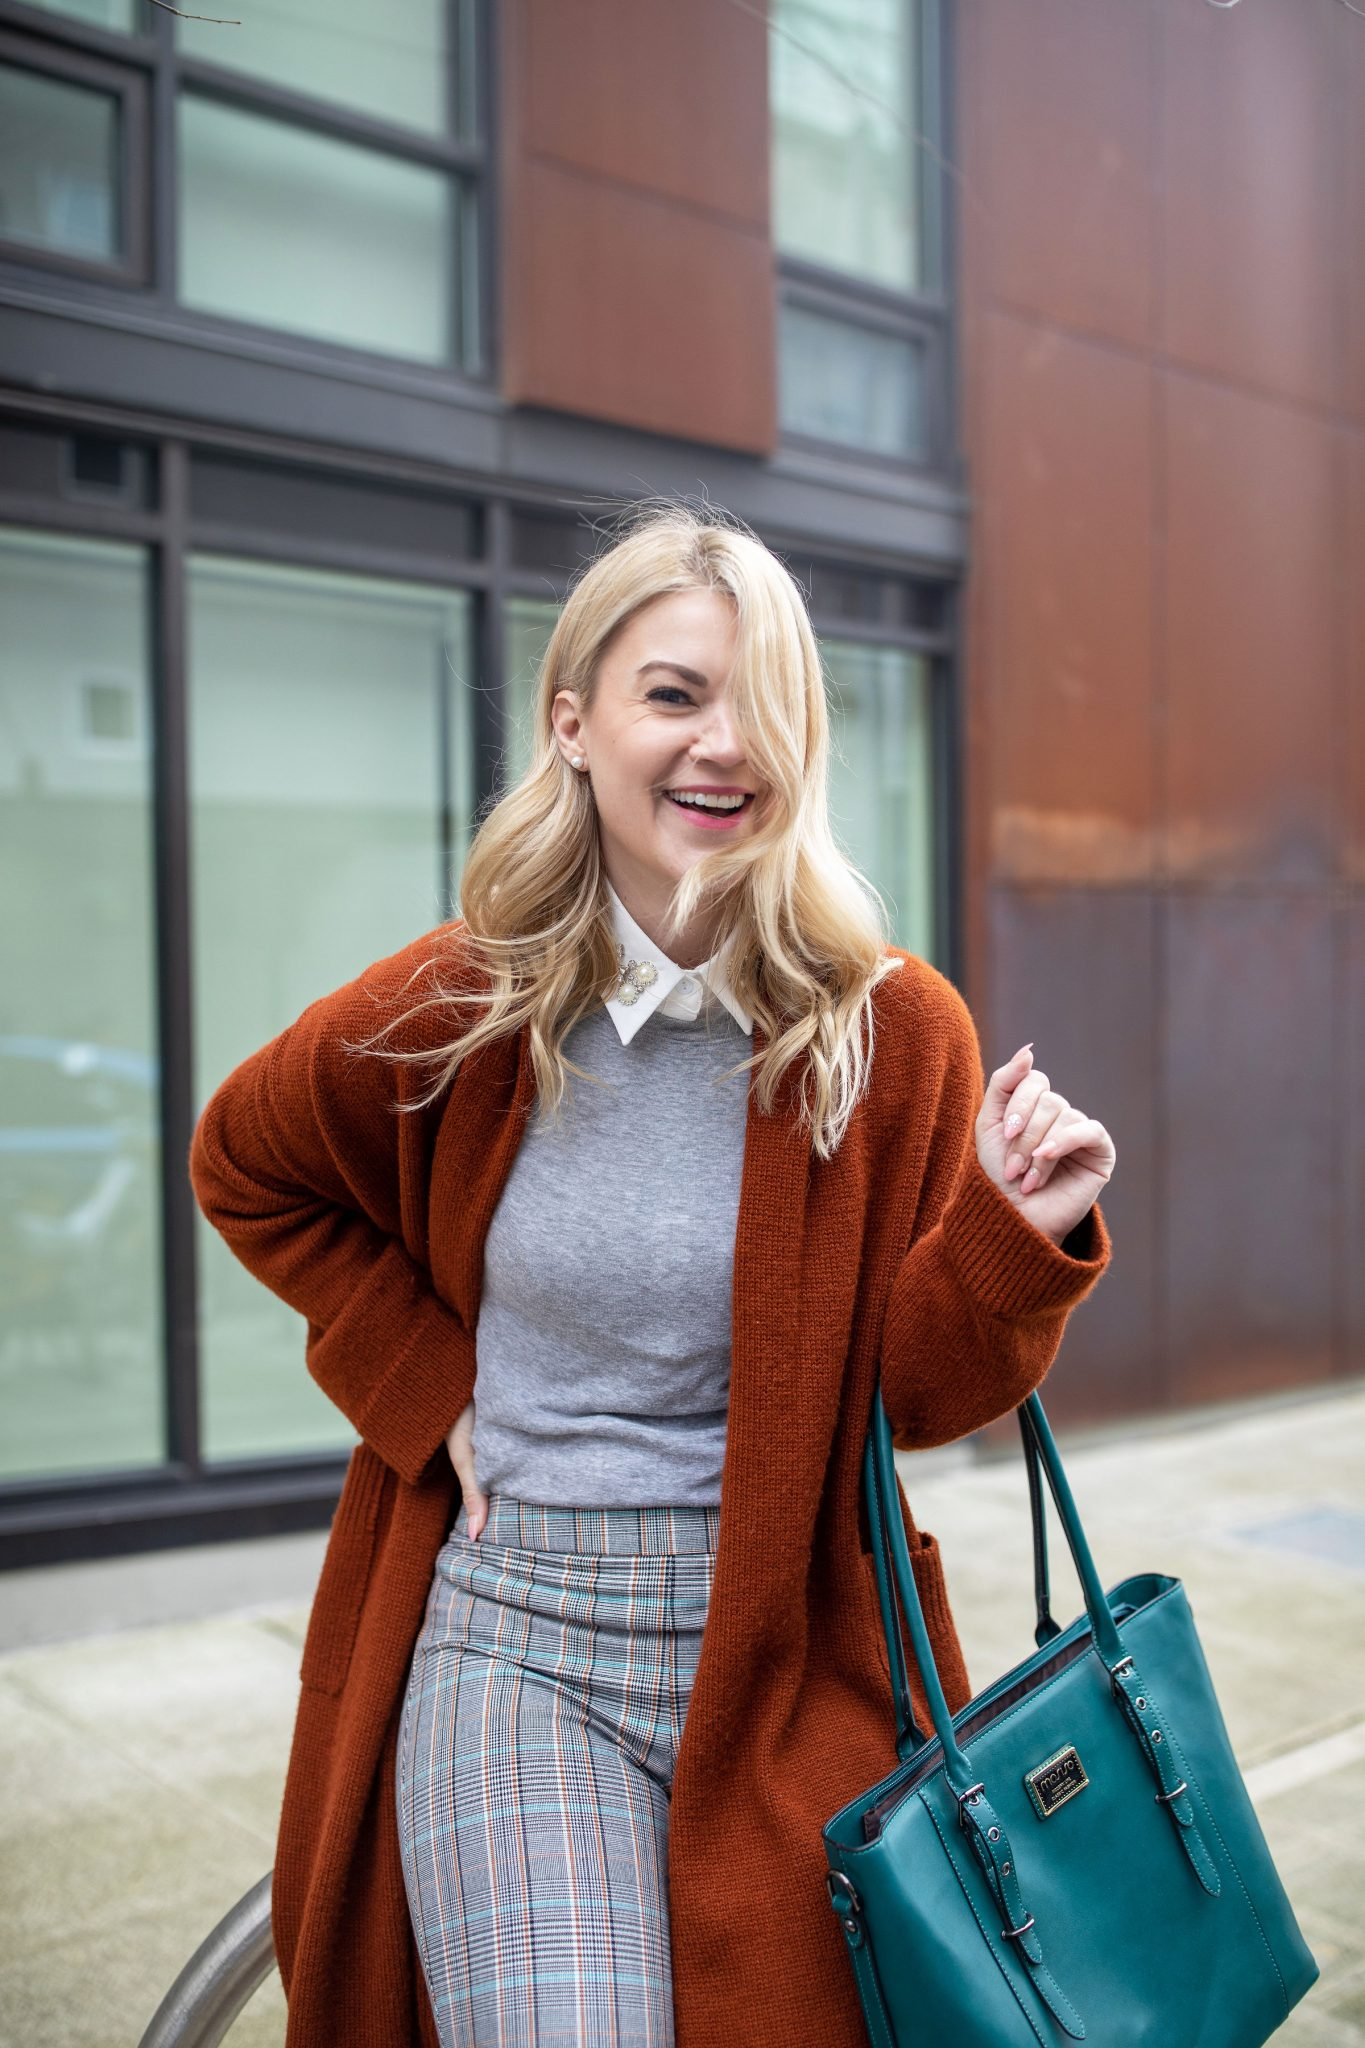 Workwear Style by popular Seattle tall fashion blog, Whit Wanders: image of a woman wearing a rust color duster cardigan, grey sweater, white blouse with bejeweled collar, plaid pants, black heels, and carrying a blue purse.